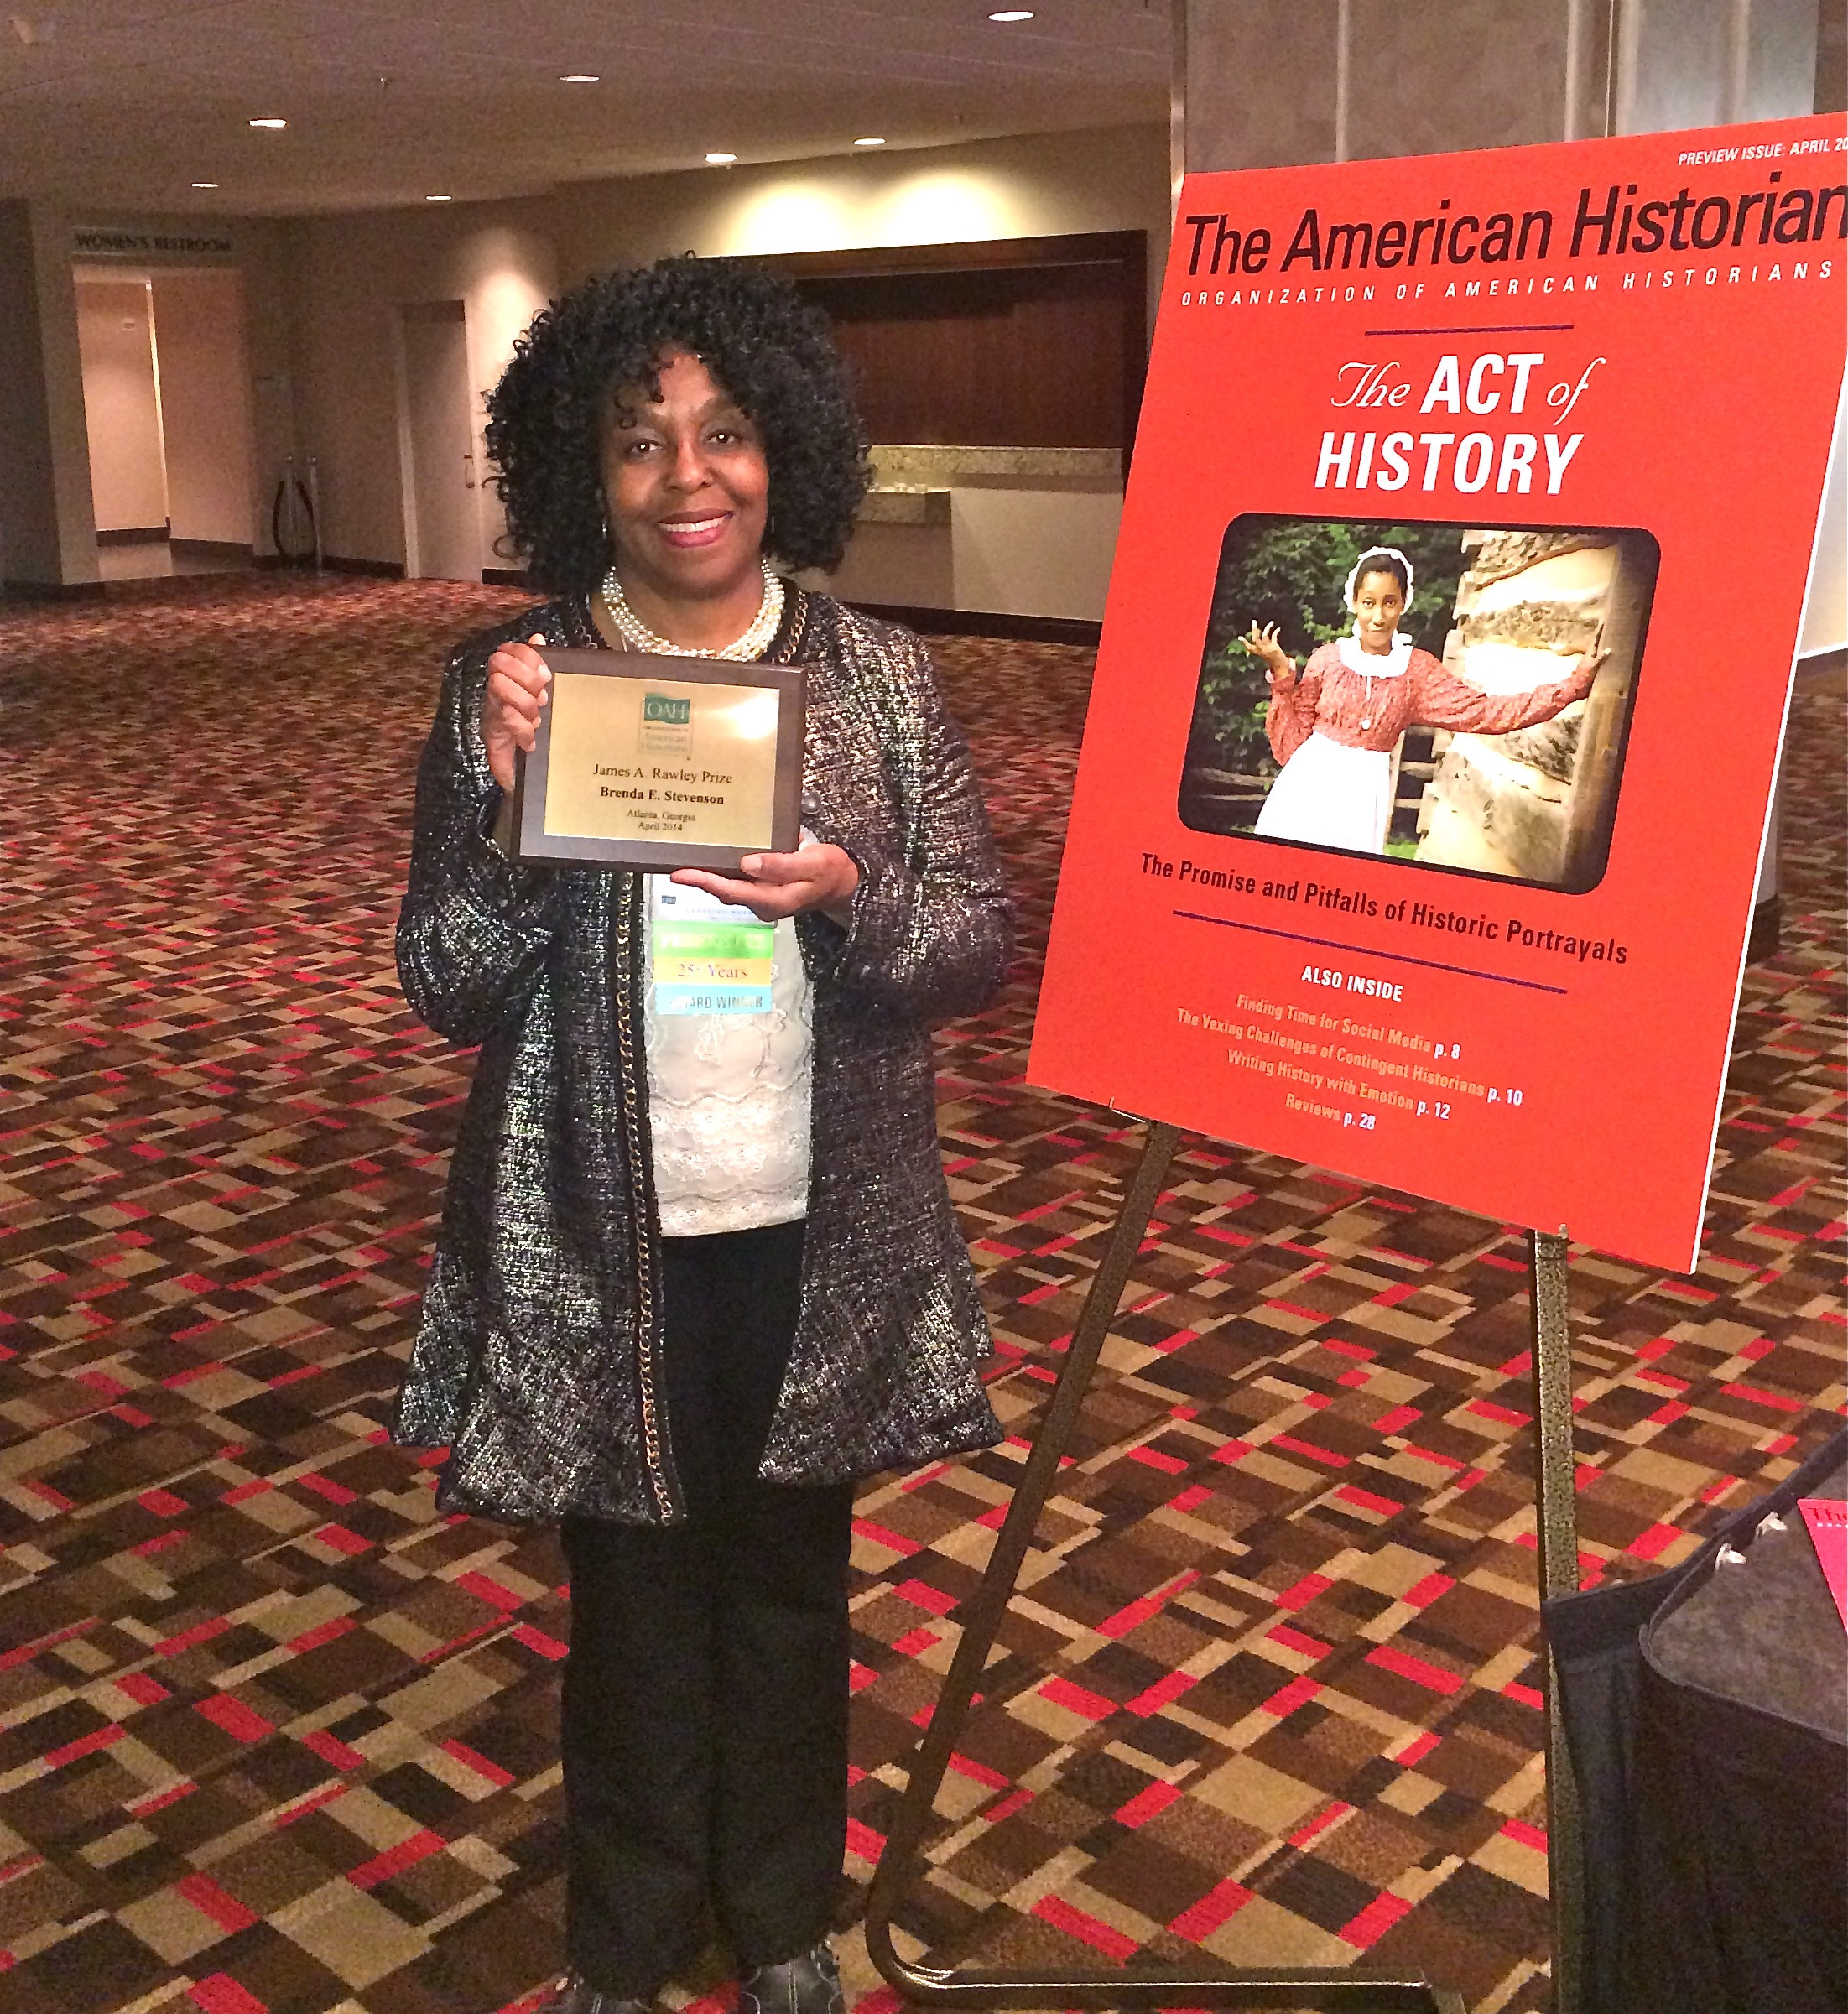 Brenda E. Stevenson Awarded James A. Rawley Prize from the OAH2014 - Brenda E. Stevenson received the James A. Rawley Prize from the Organization of American Historians. The Rawley Prize is awarded to the best book on race relations published that year.